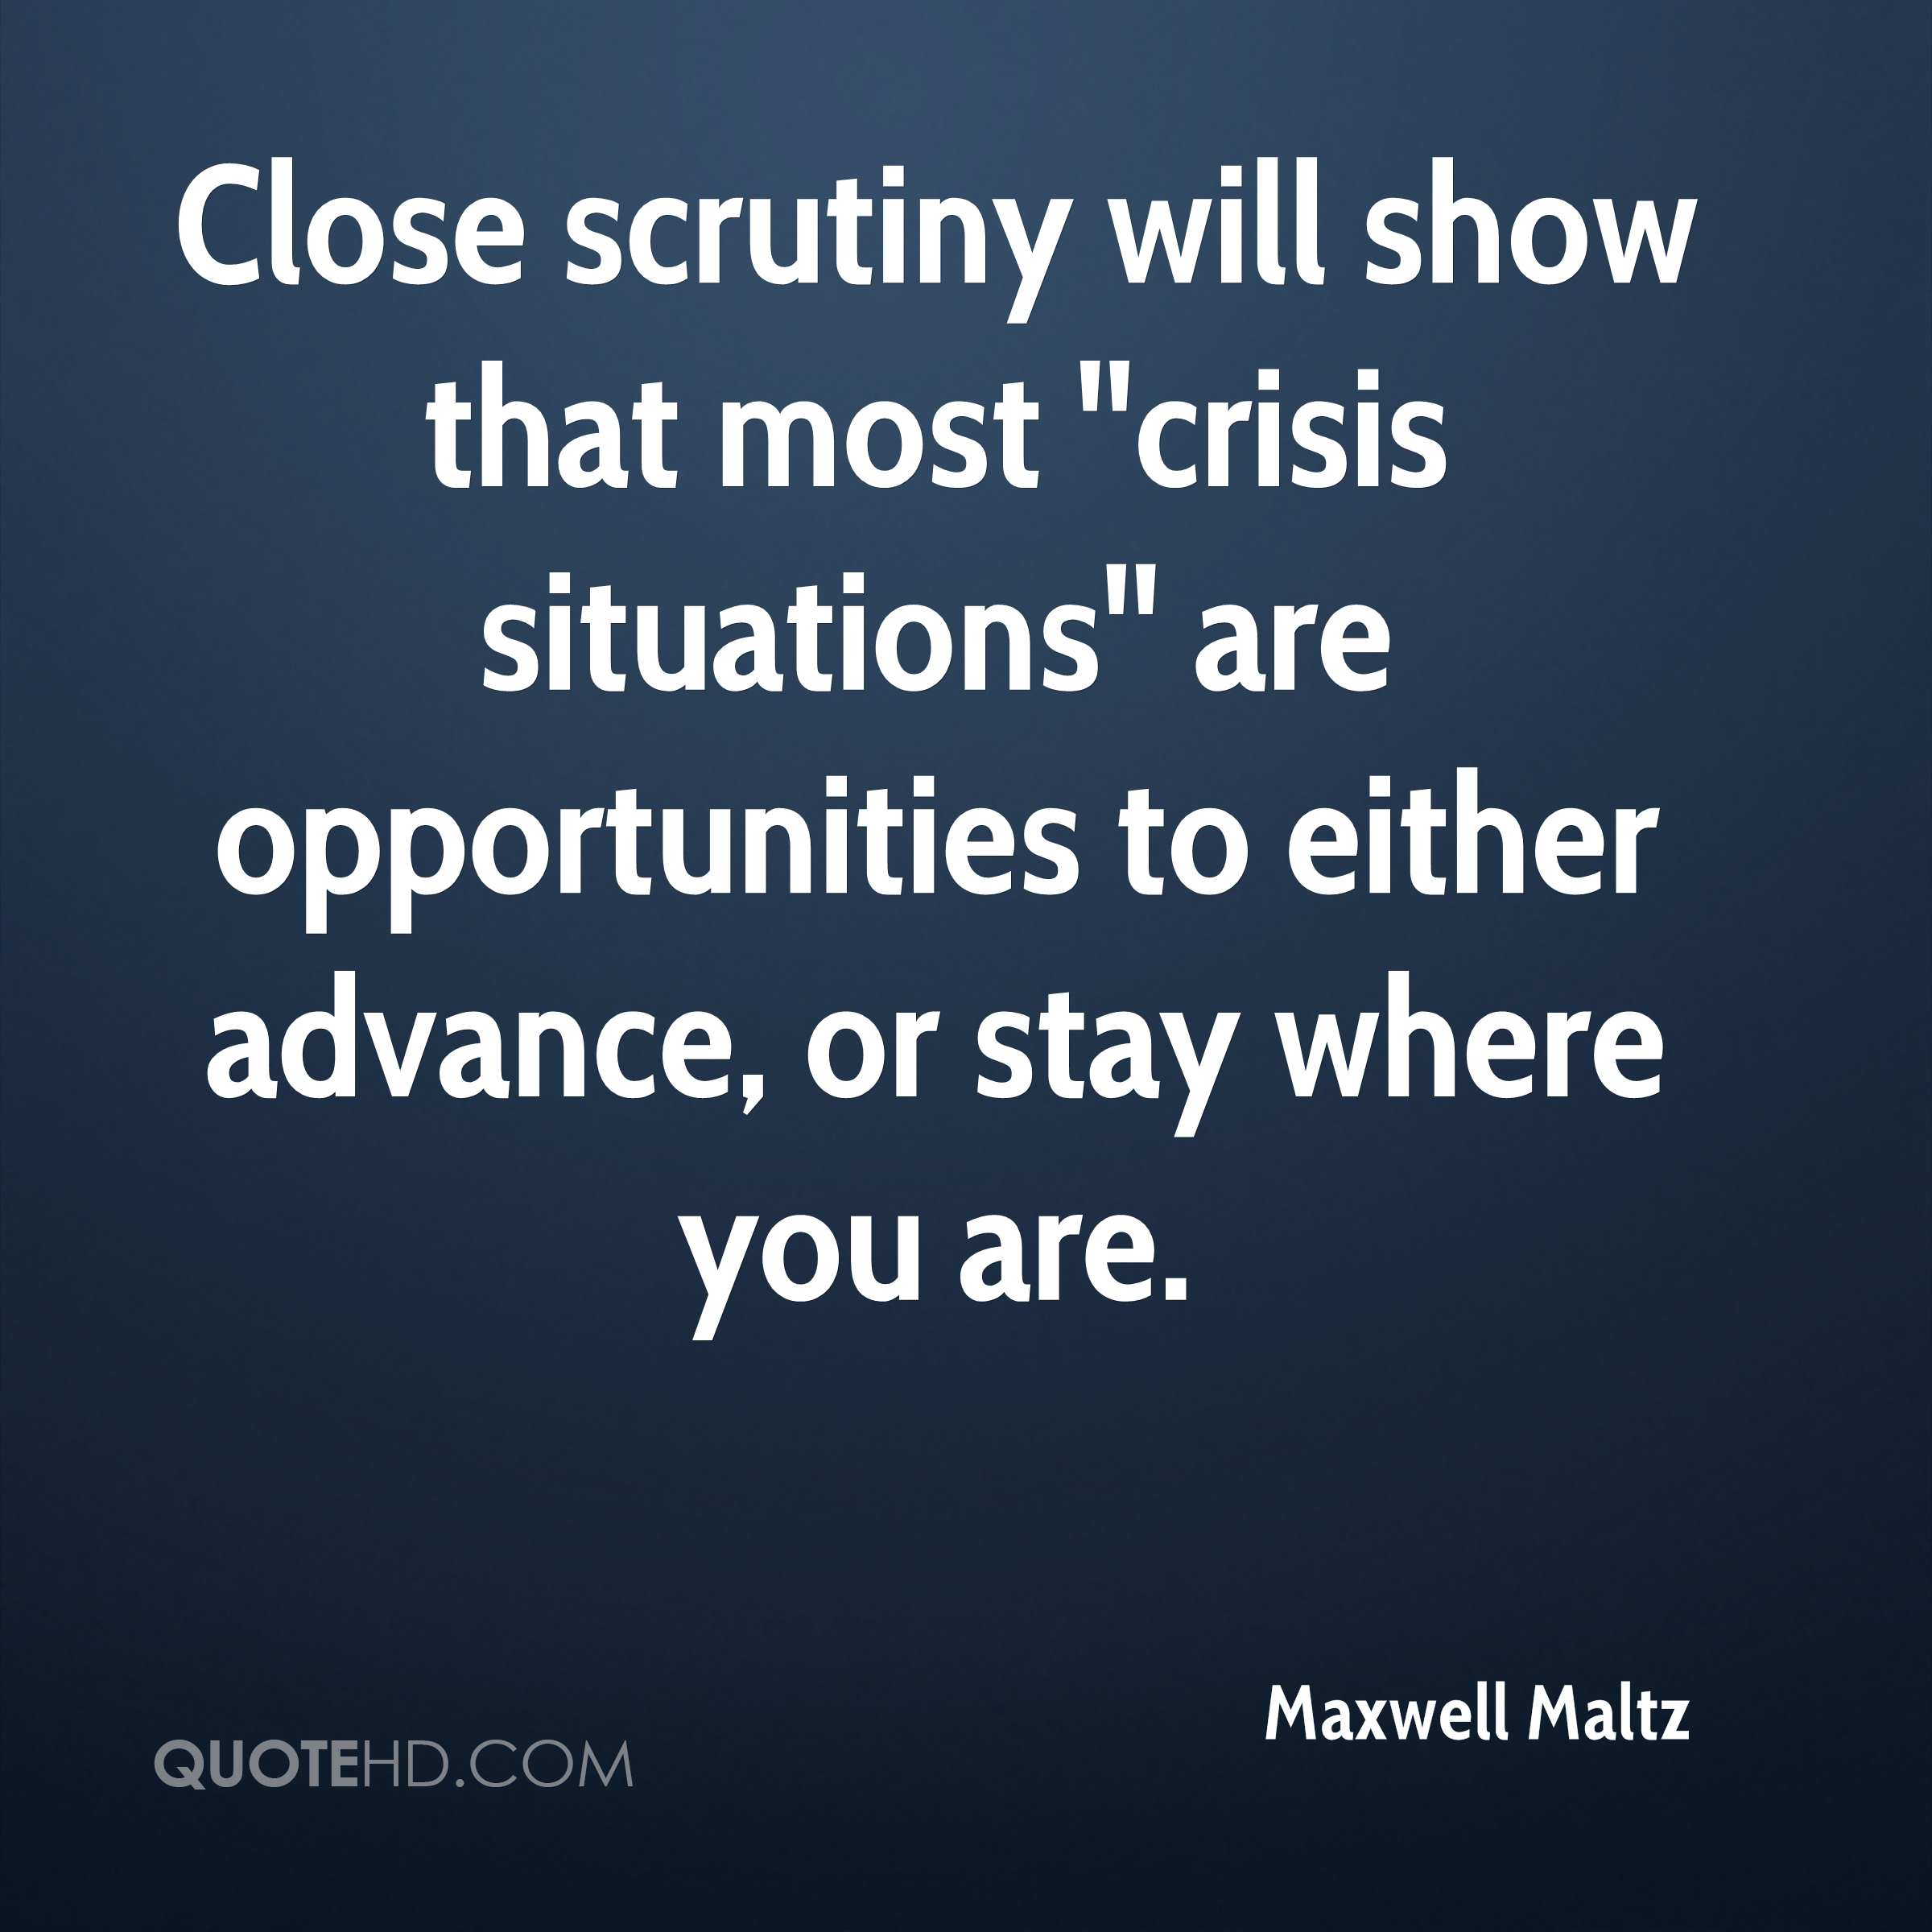 Close scrutiny will show that most ''crisis situations'' are opportunities to either advance, or stay where you are.